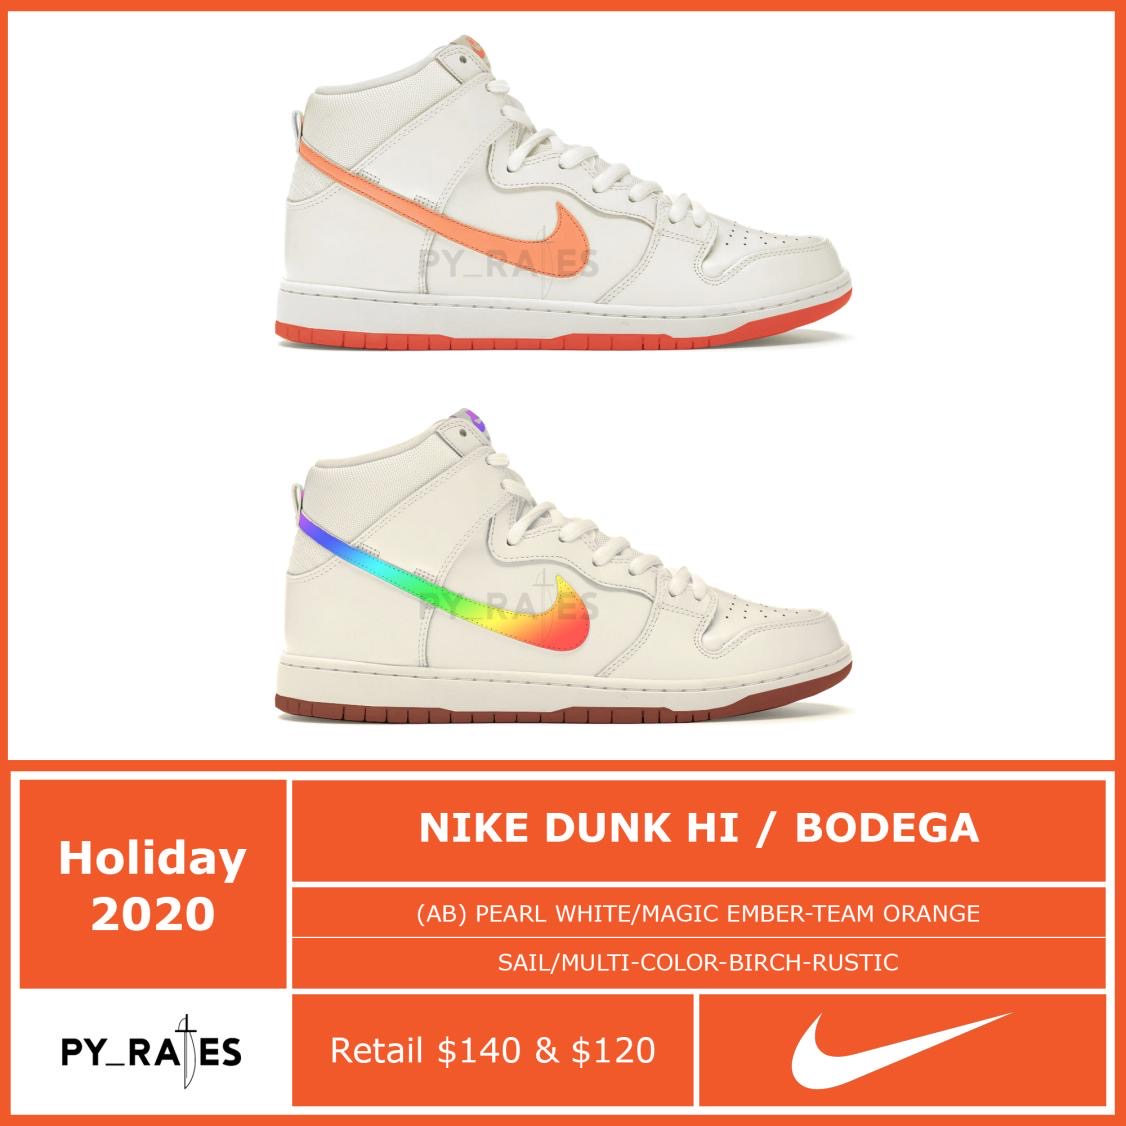 bdga-nike-dunk-high-ab-release-2020-winter